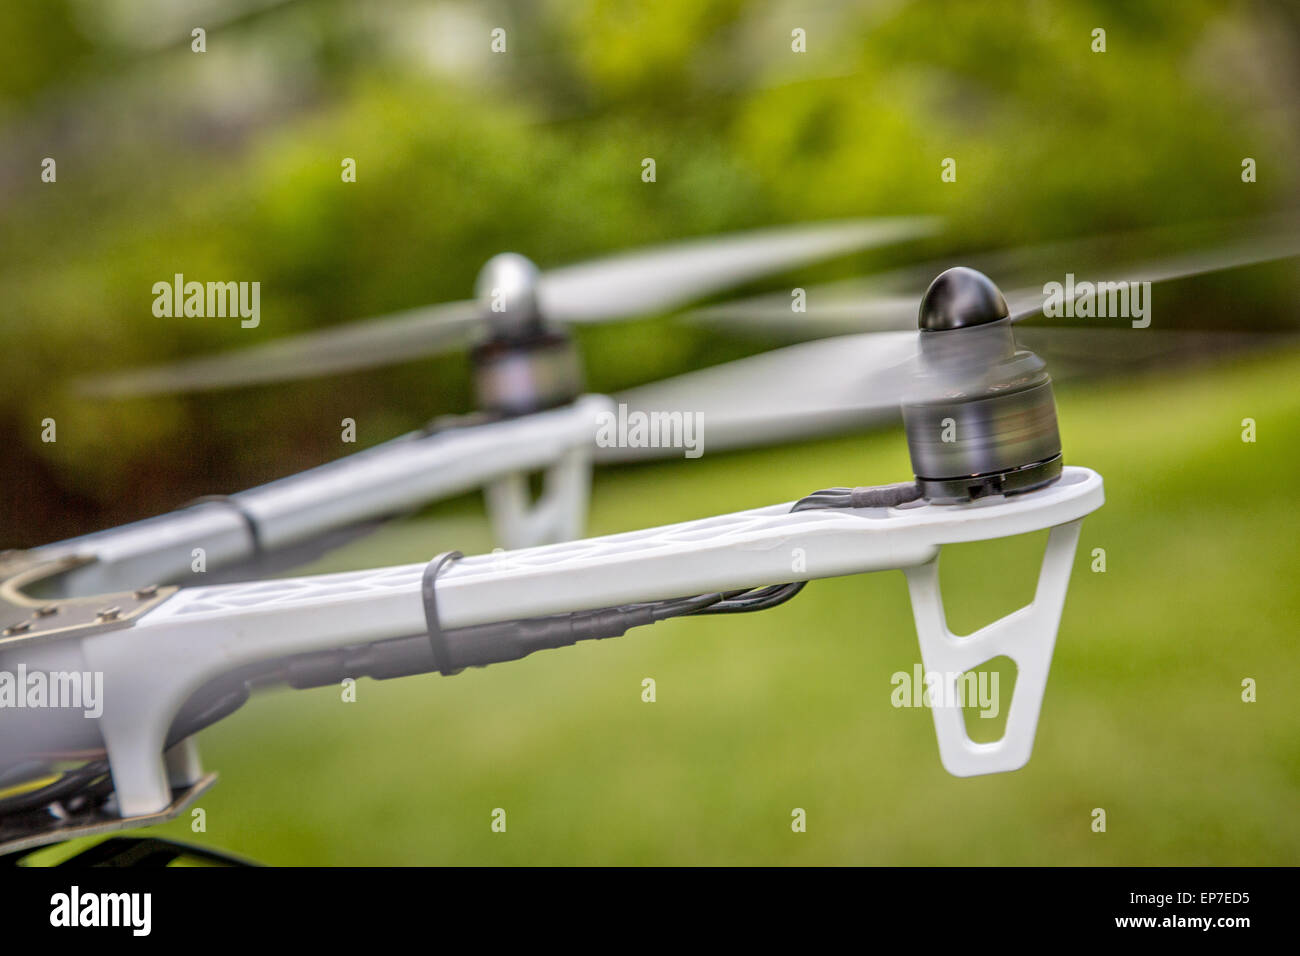 blurred spinning propellers of a hexacopter drone flying over green area - Stock Image